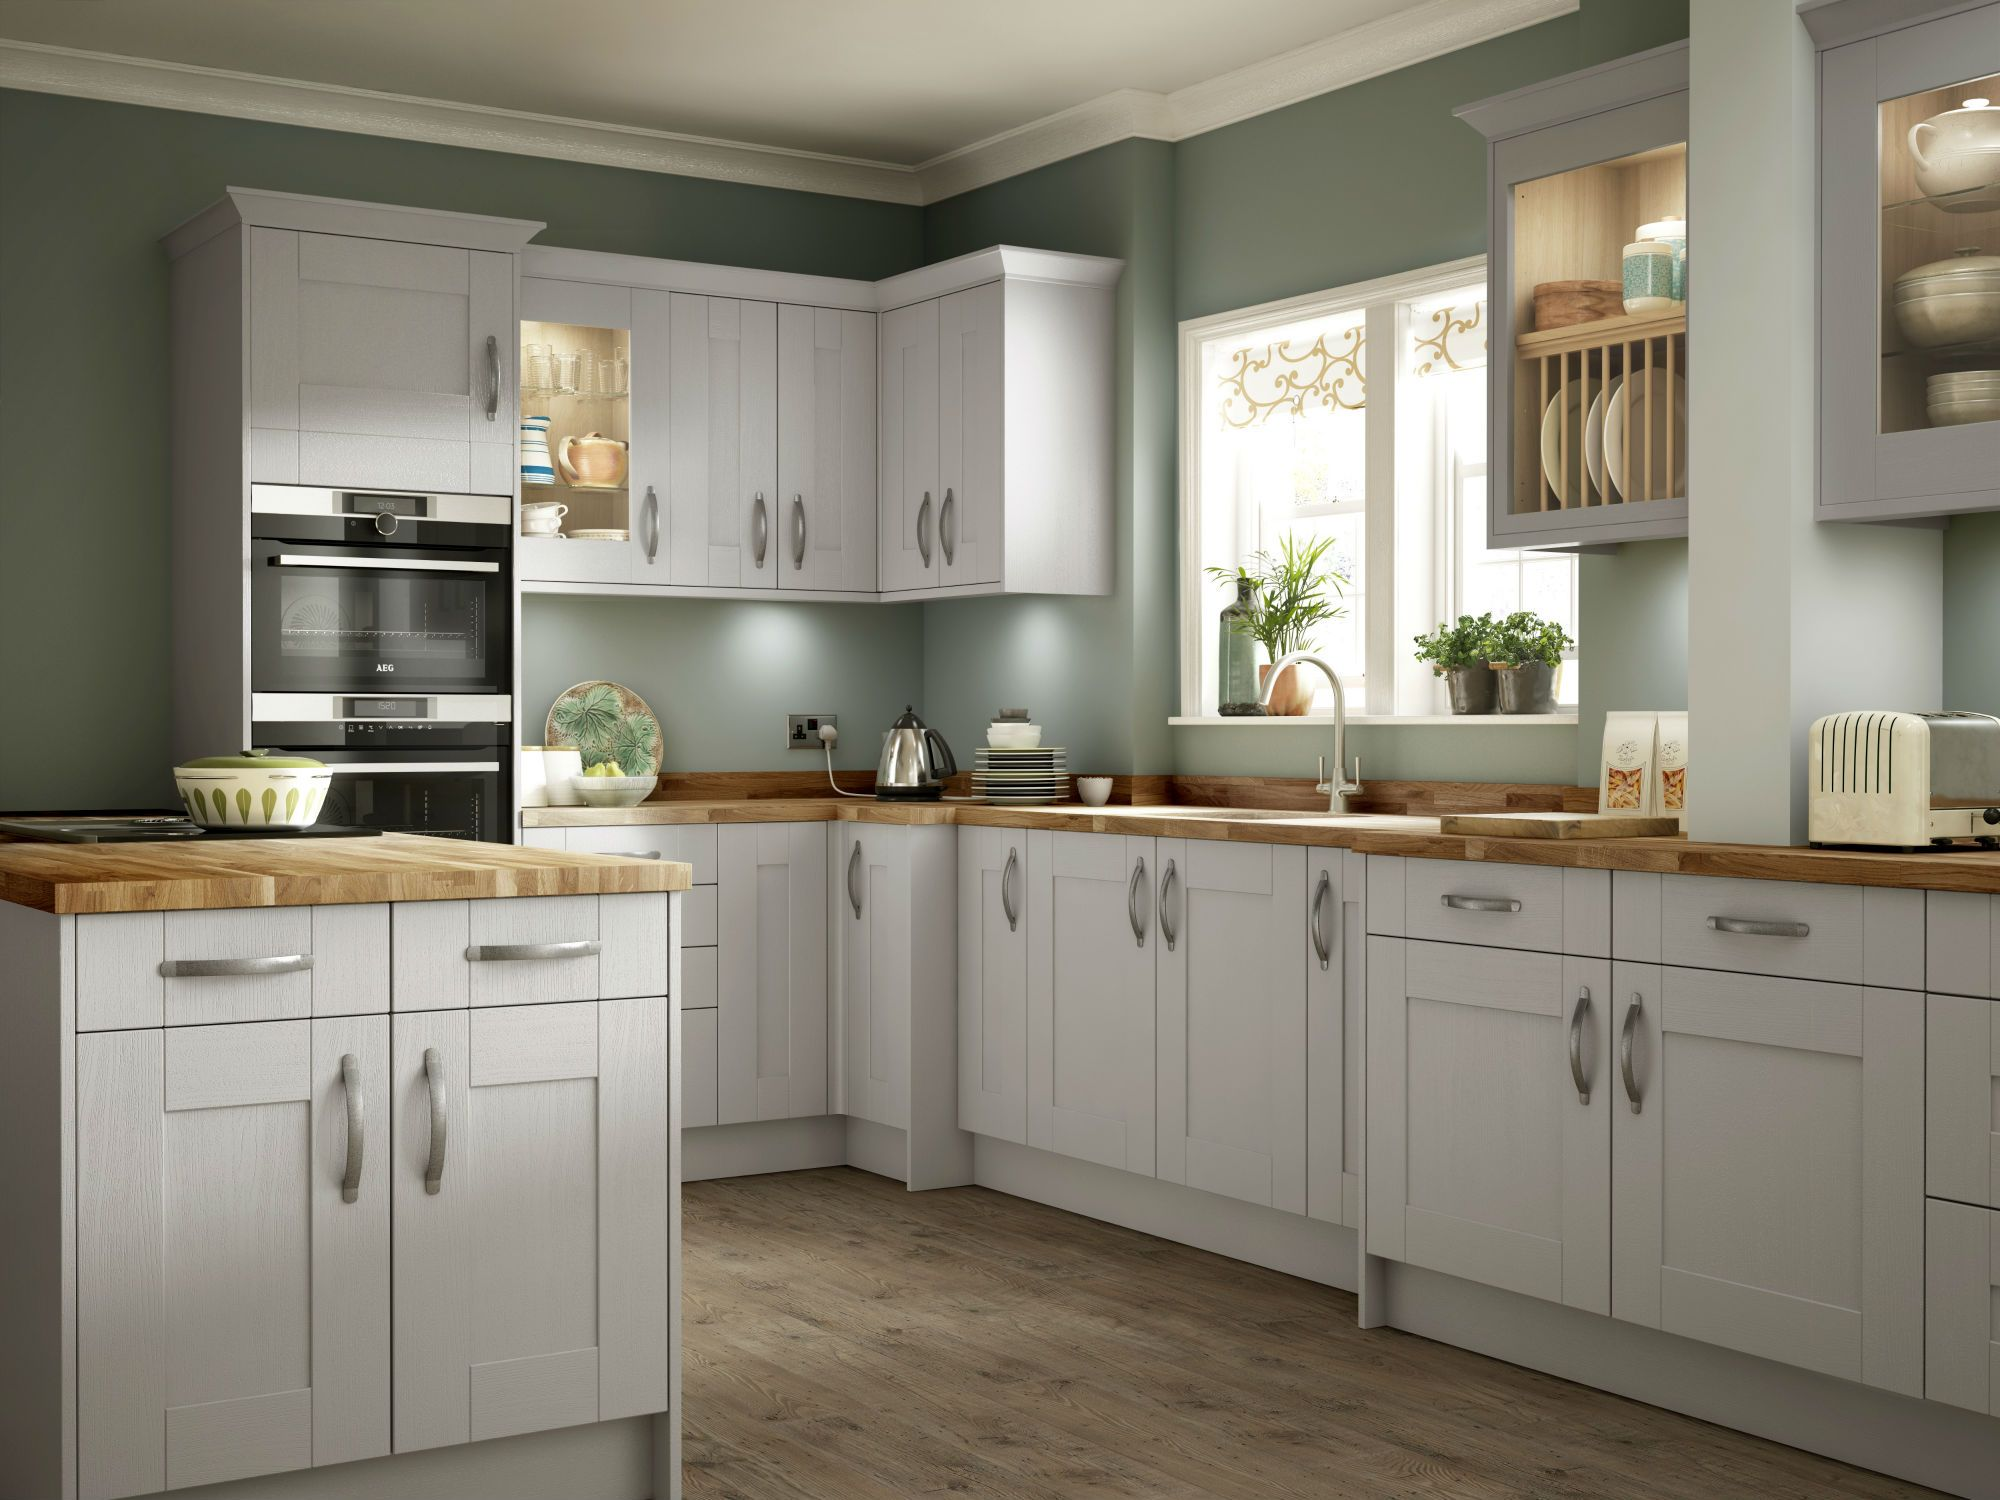 Our Sherwood soft grey doors and drawers combine perfectly